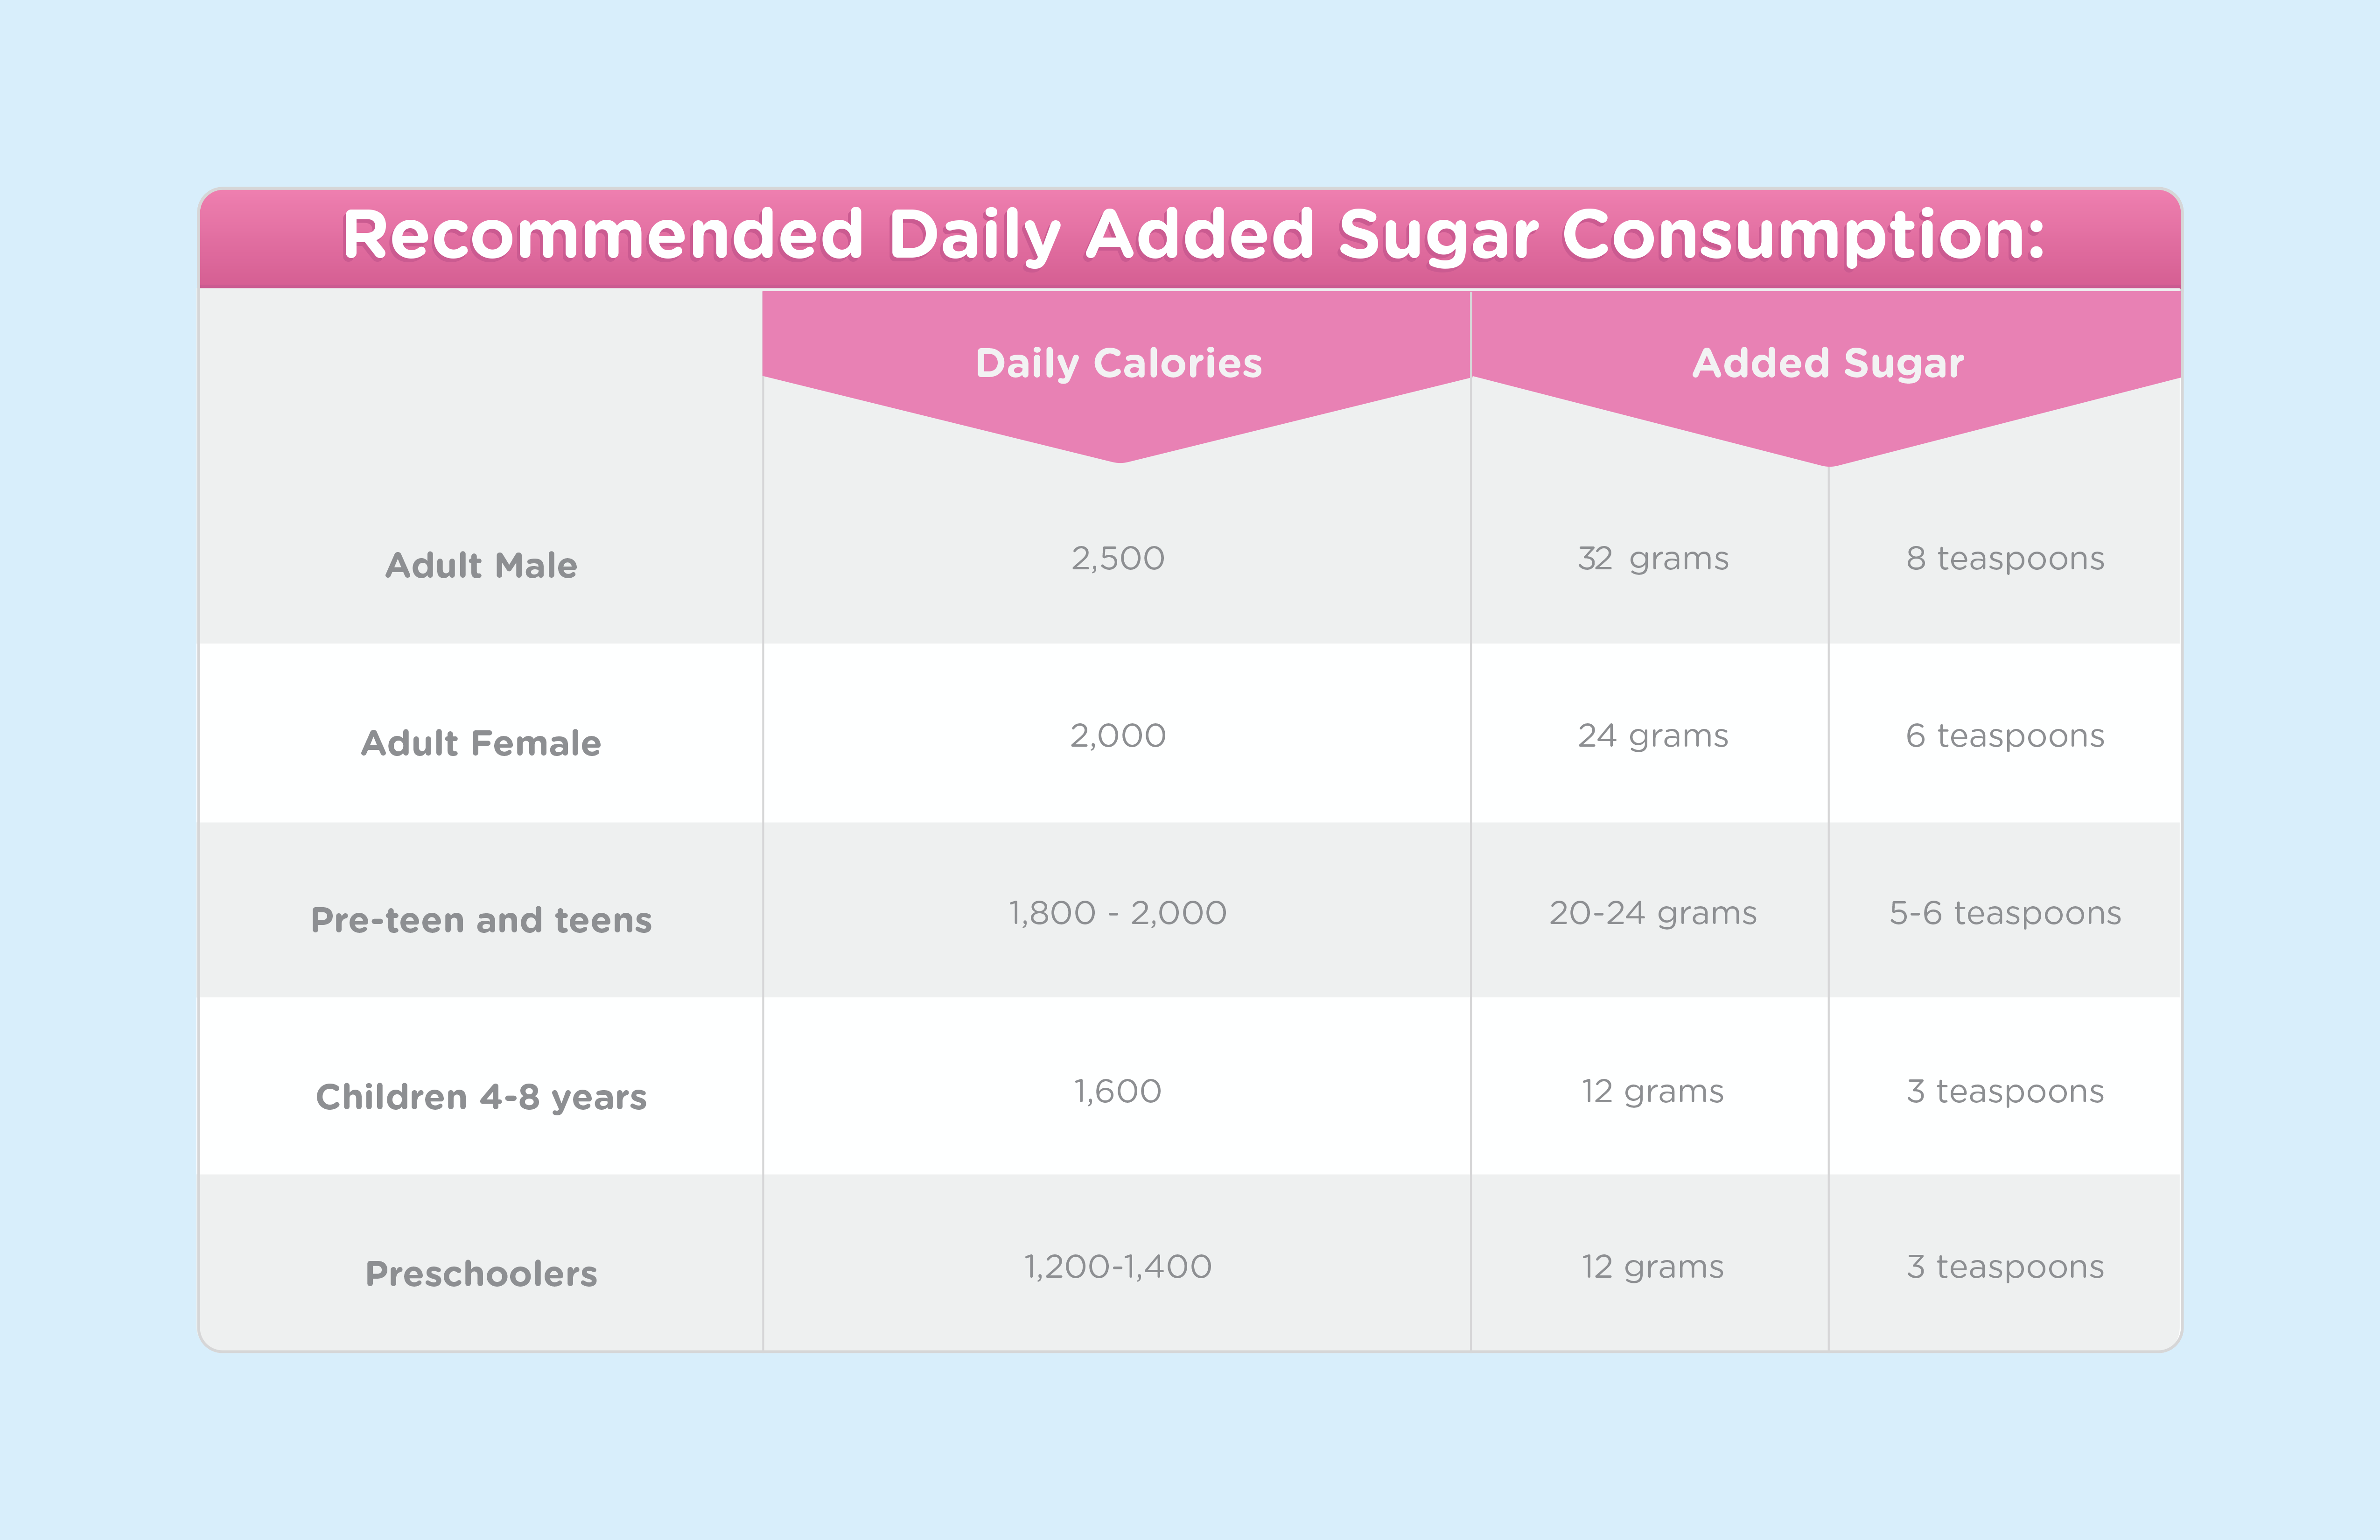 Table highlights the  recommended daily sugar intake for families by the W.H.O